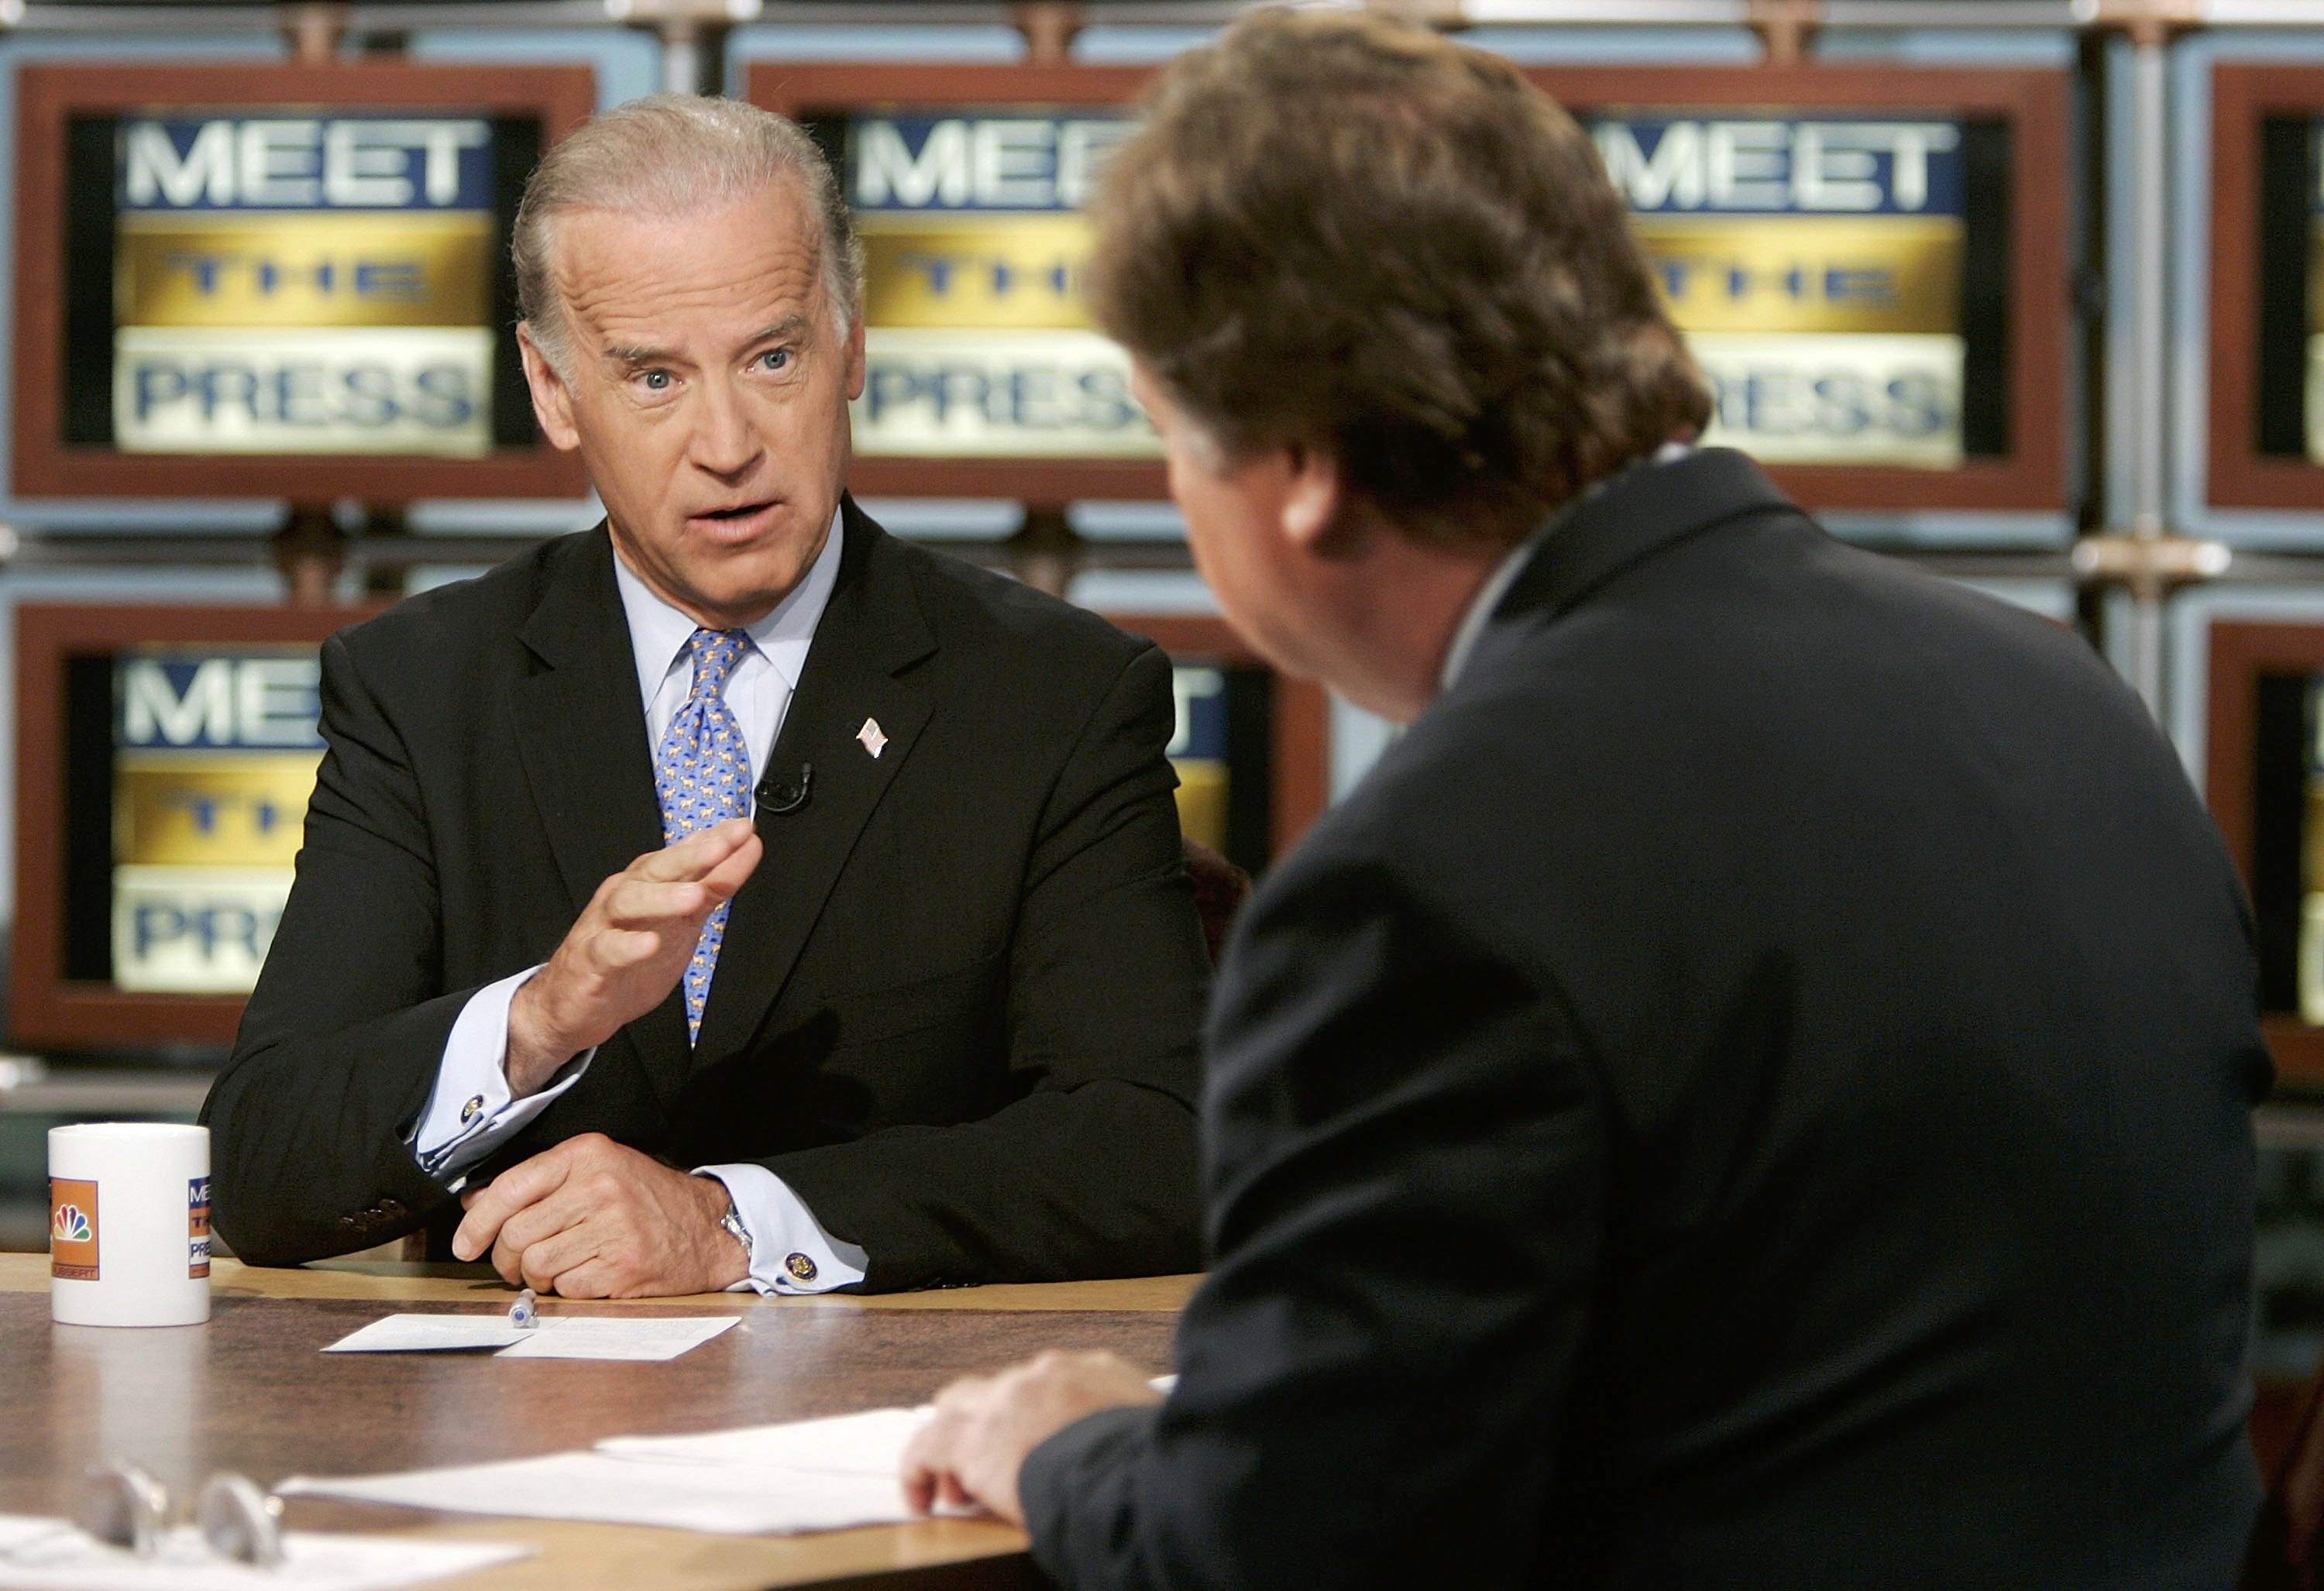 """Then U.S. Senator Joseph Biden speaks as he is interviewed by moderator Tim Russert during a taping of """"Meet the Press"""" at the NBC studios June 4, 2006 in Washington, DC. (Photo: Alex Wong/Getty Images for Meet the Press)"""